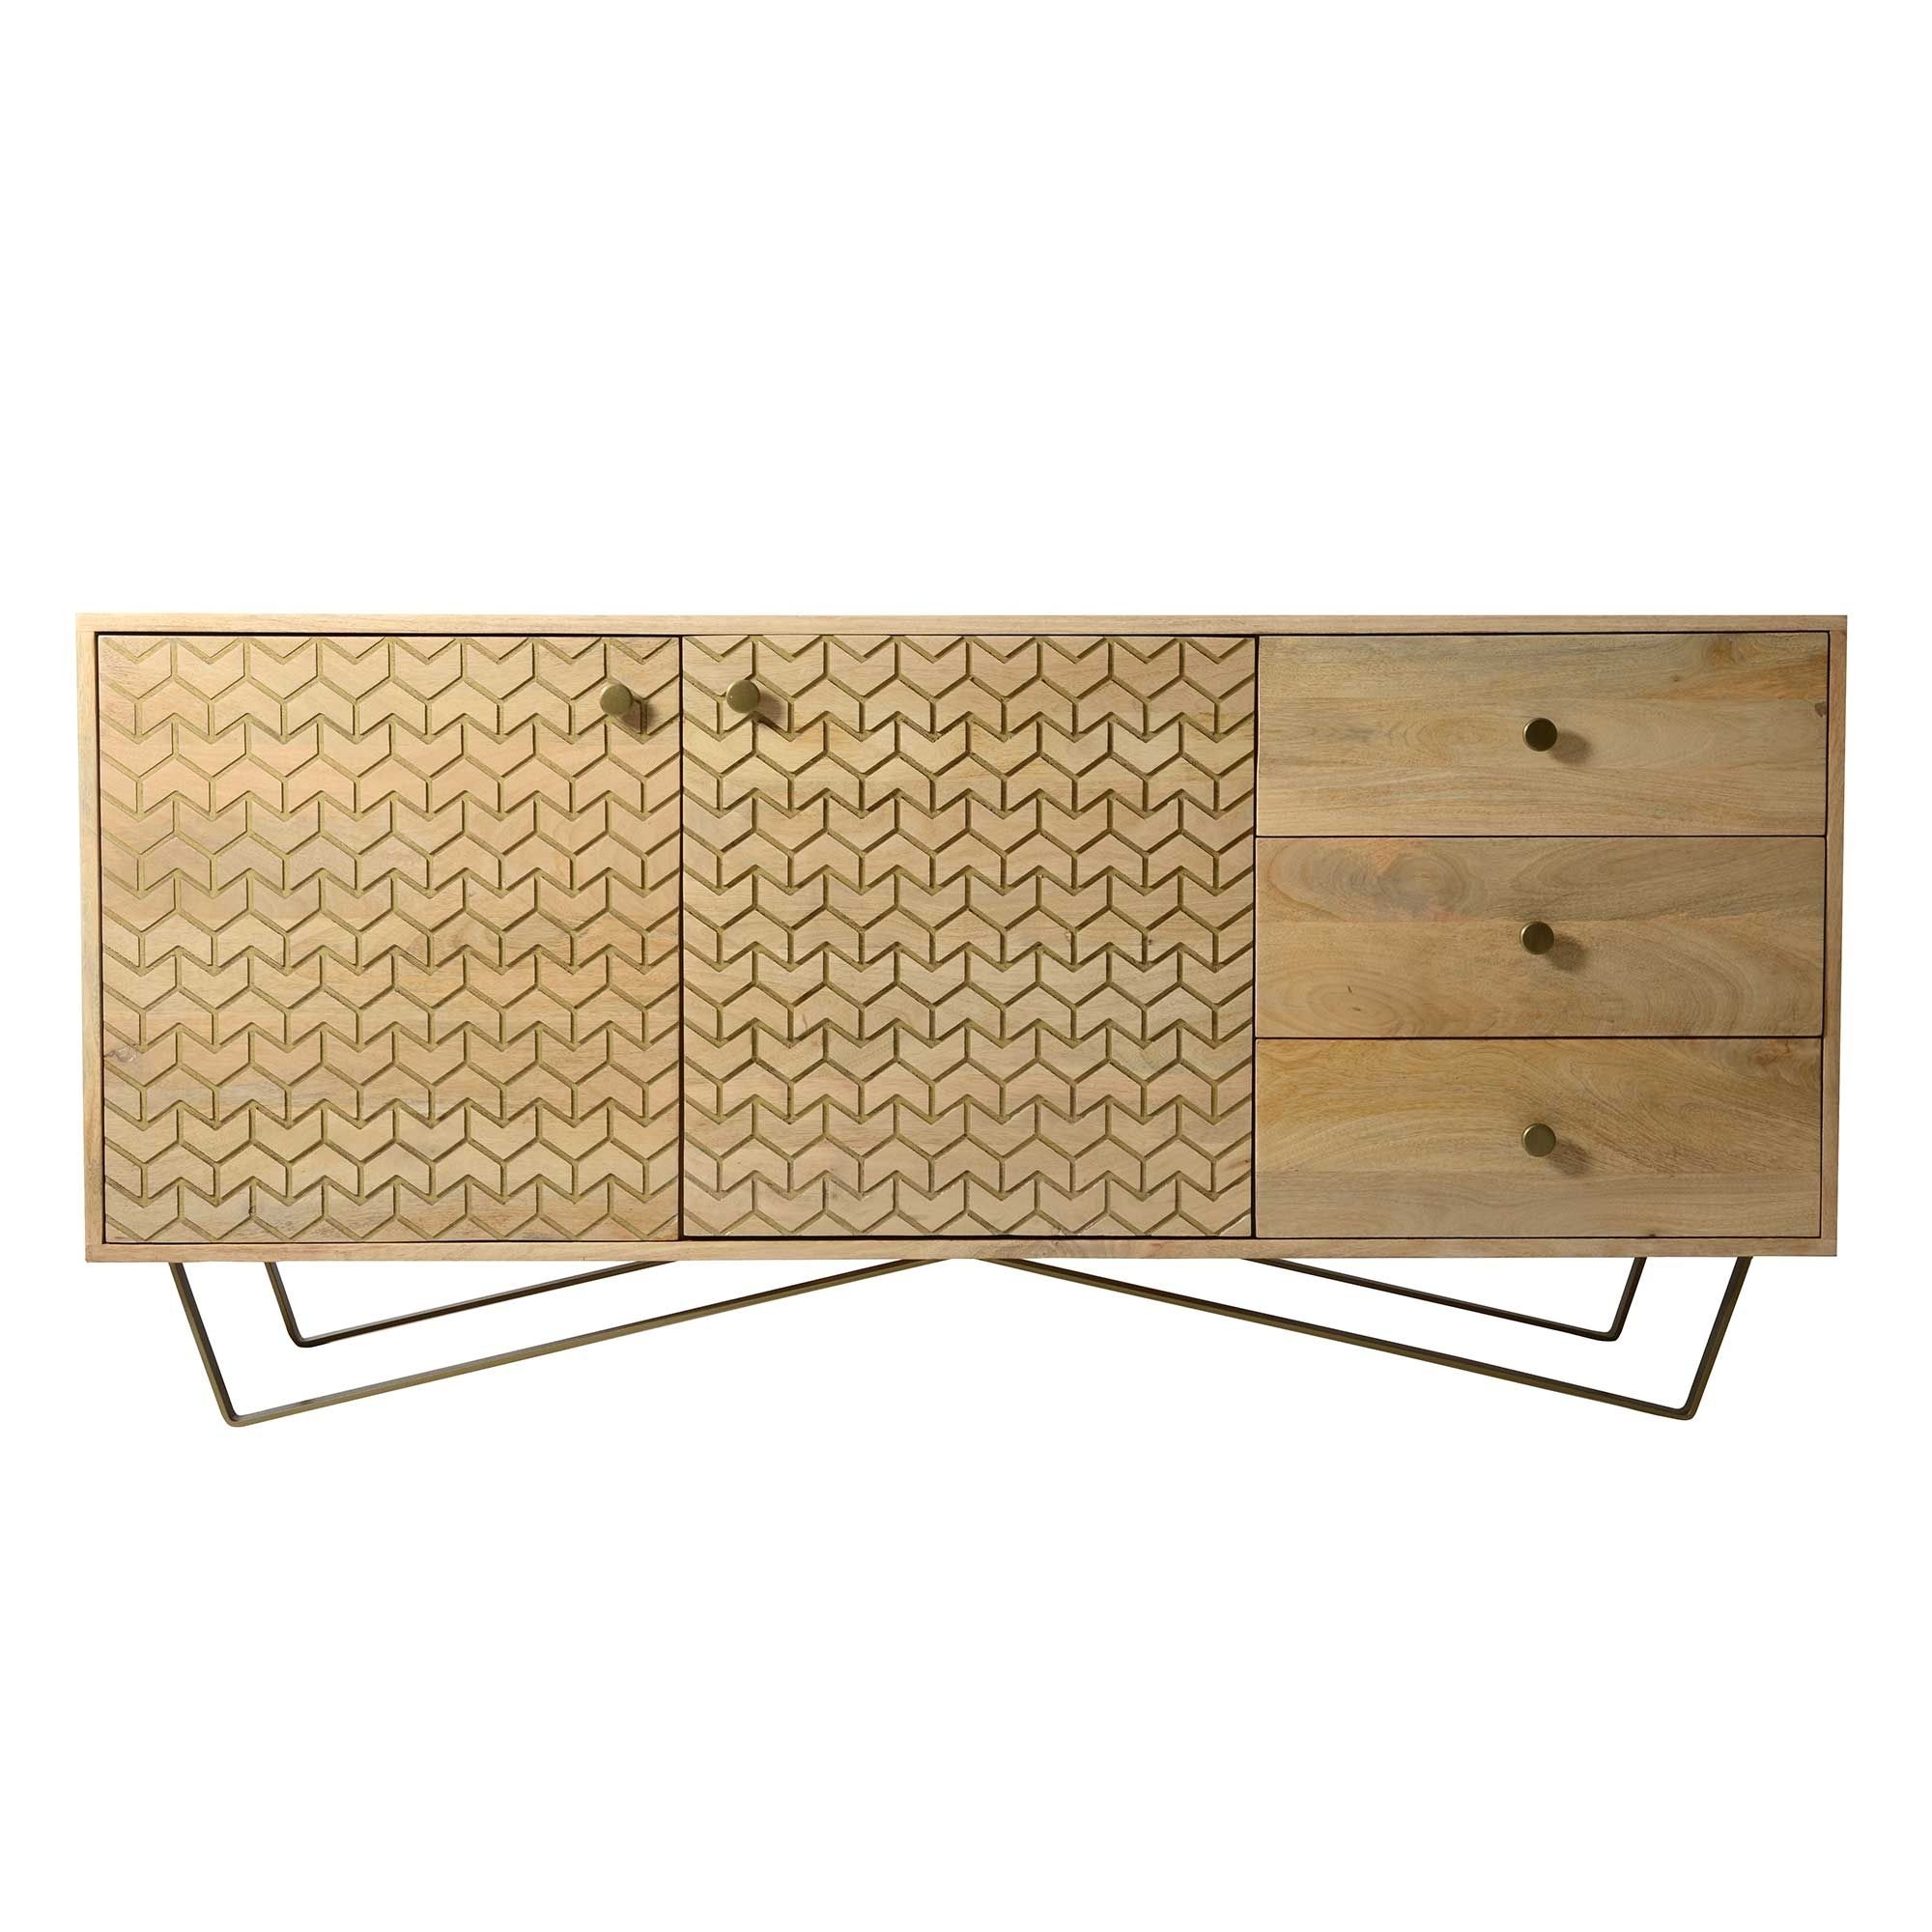 Drupe 3 Drawer 2 Door Sideboard, Mango Wood And Brass | Trend: What for Aged Pine 3-Drawer 2-Door Sideboards (Image 8 of 30)